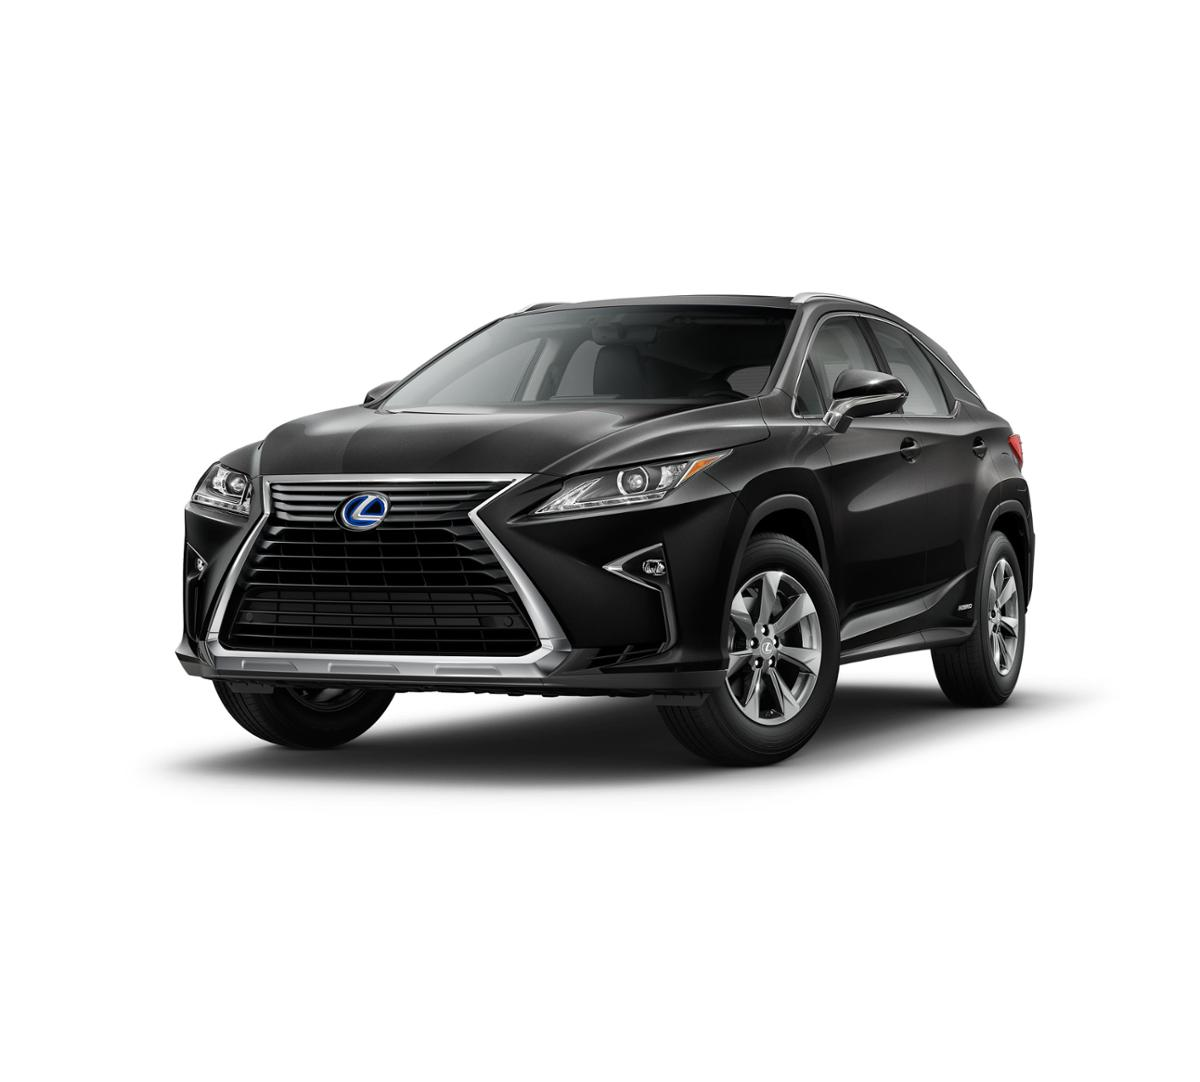 2017 Lexus RX 450h Vehicle Photo in Danvers, MA 01923